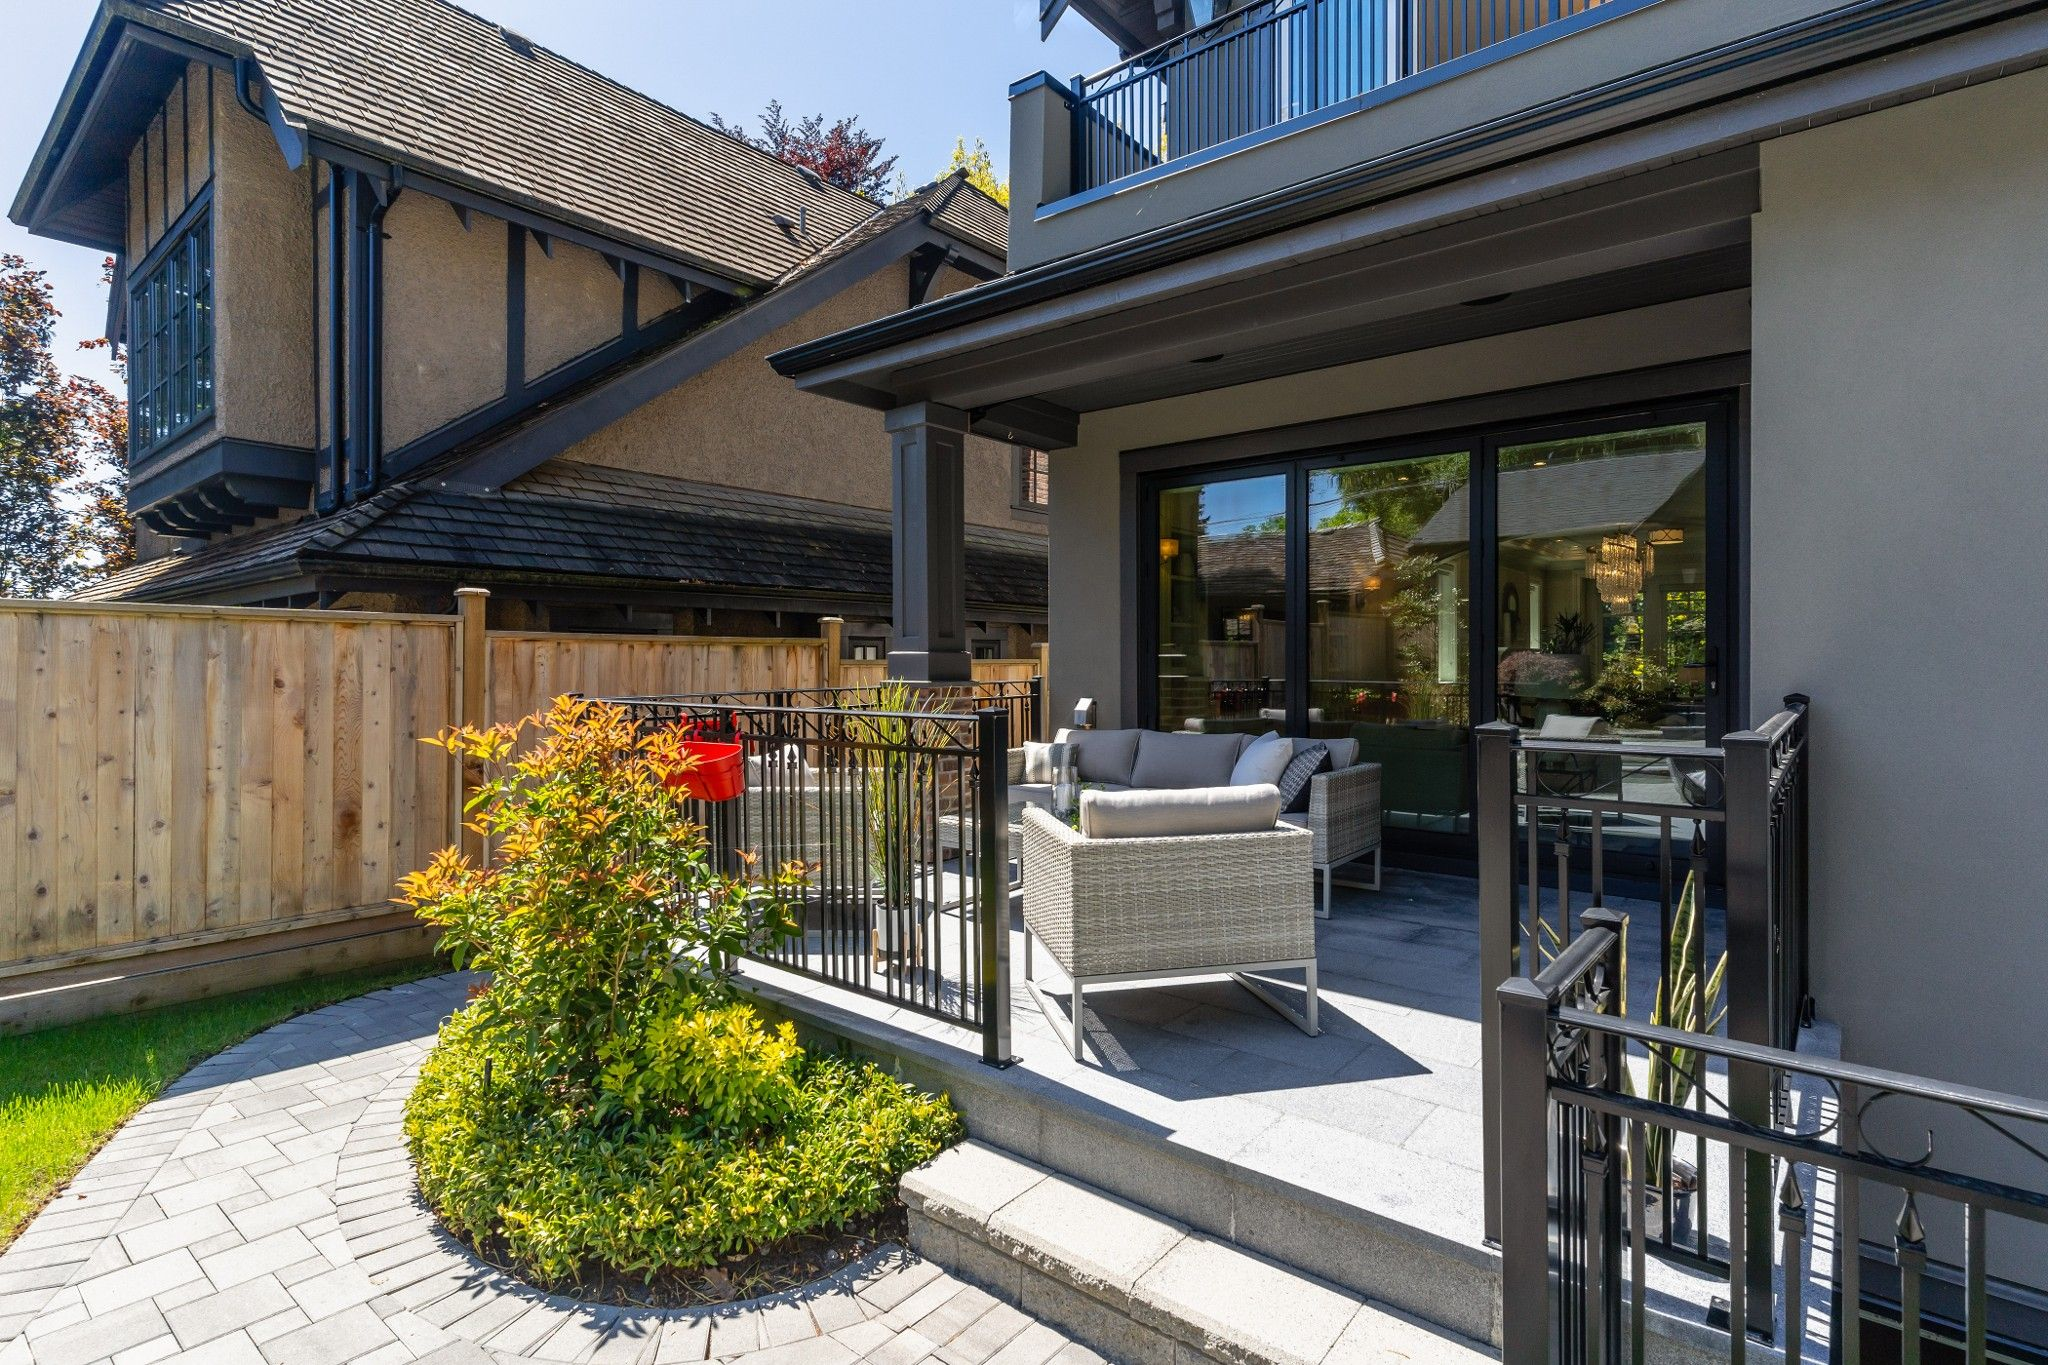 Photo 42: Photos: 5756 ALMA STREET in VANCOUVER: Southlands House for sale (Vancouver West)  : MLS®# R2588229